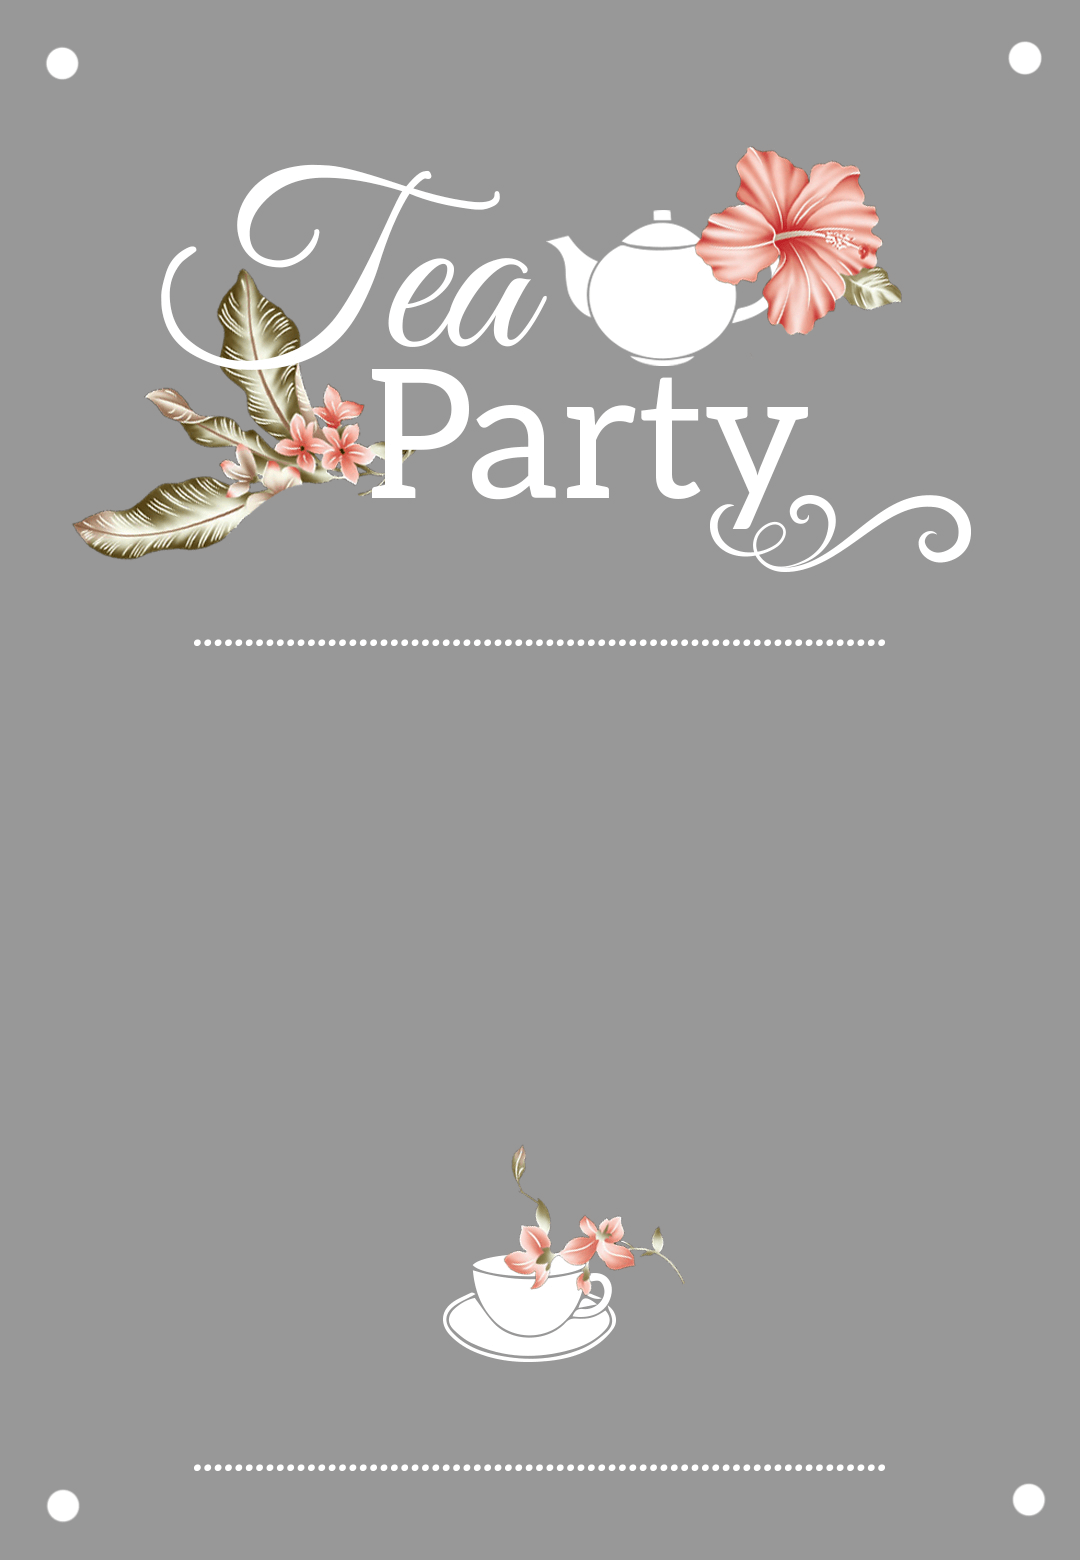 photograph about Bridal Shower Invitations Free Printable identify Bridal Shower Tea Celebration - Absolutely free Printable Bridal Shower